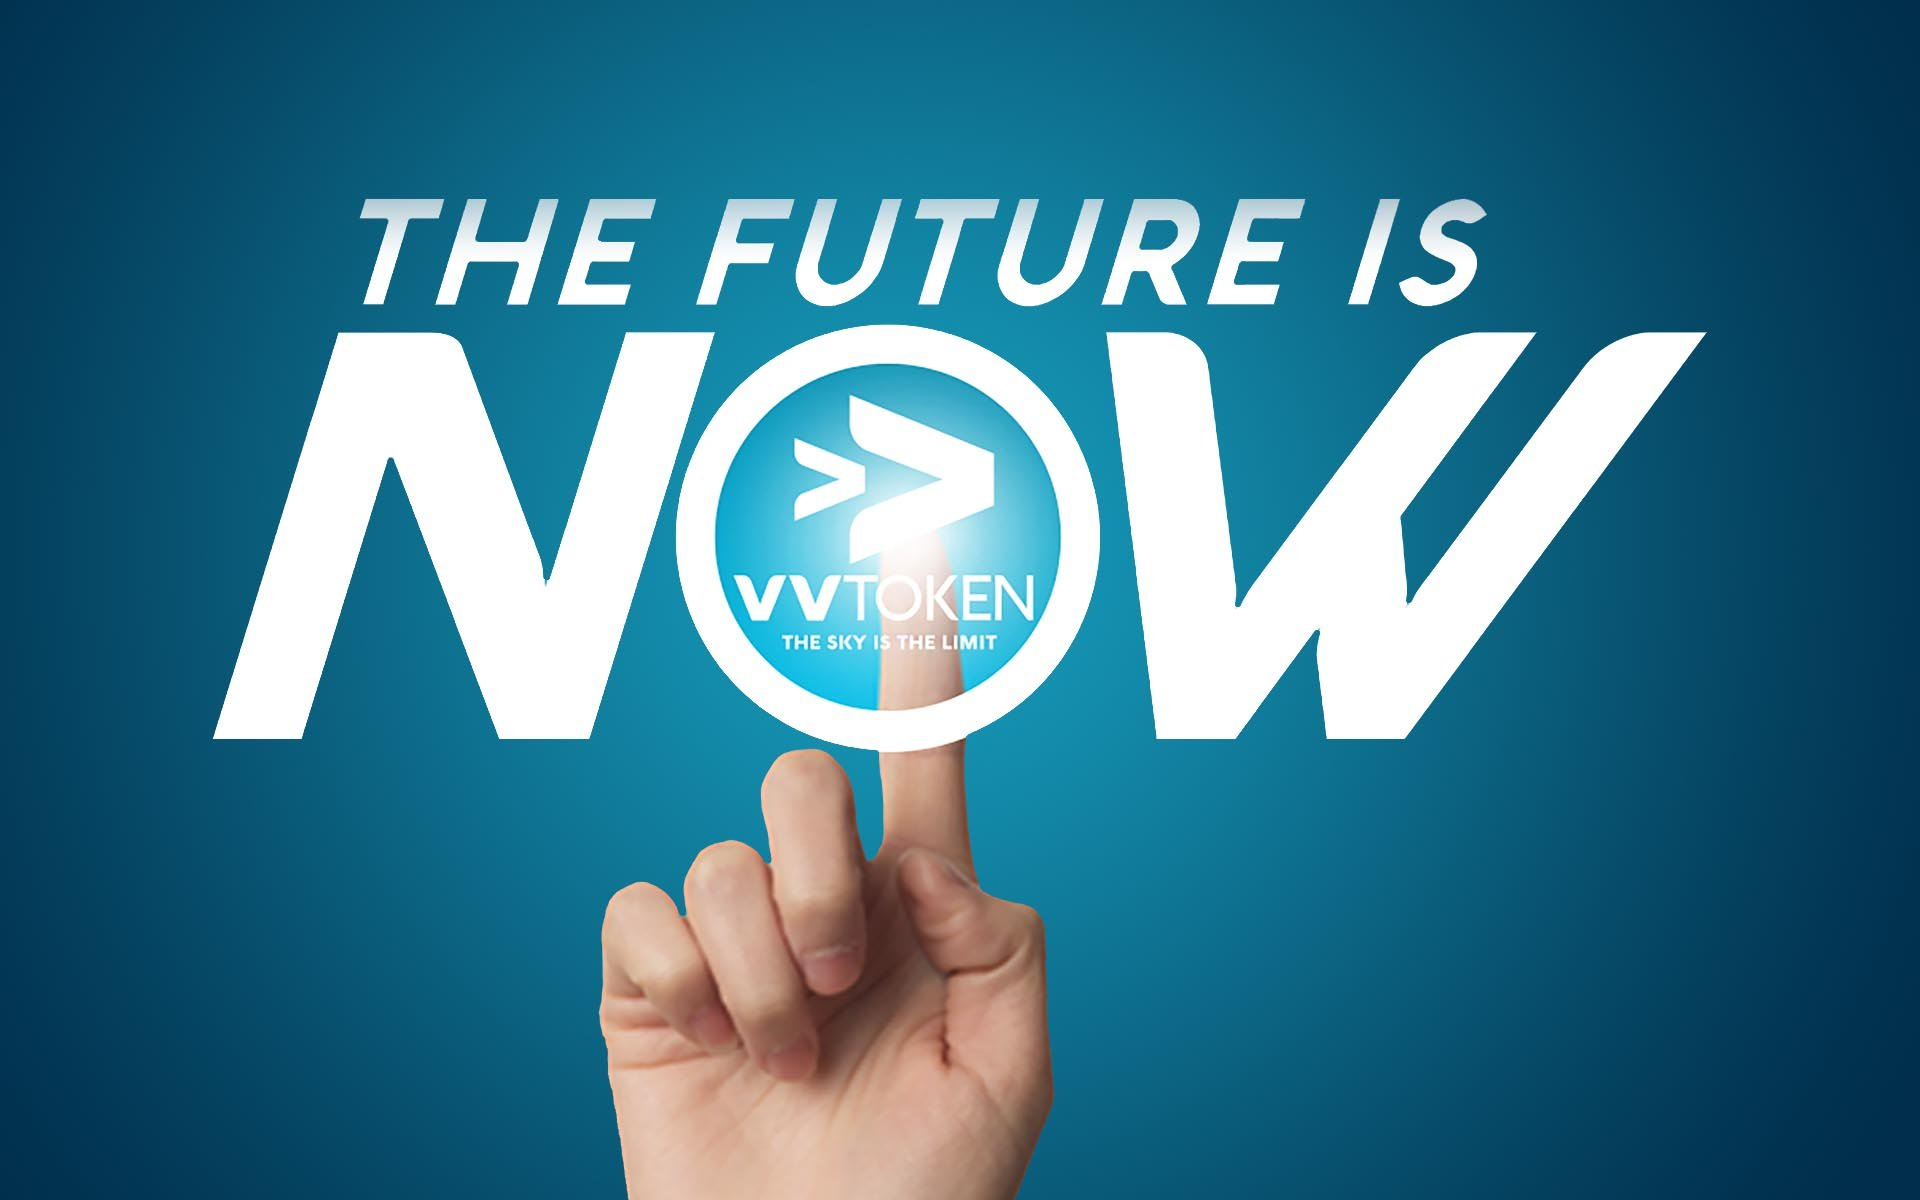 VVToken's Pre-Sale Soars, Raising Over 6 Million in Just 6 Weeks